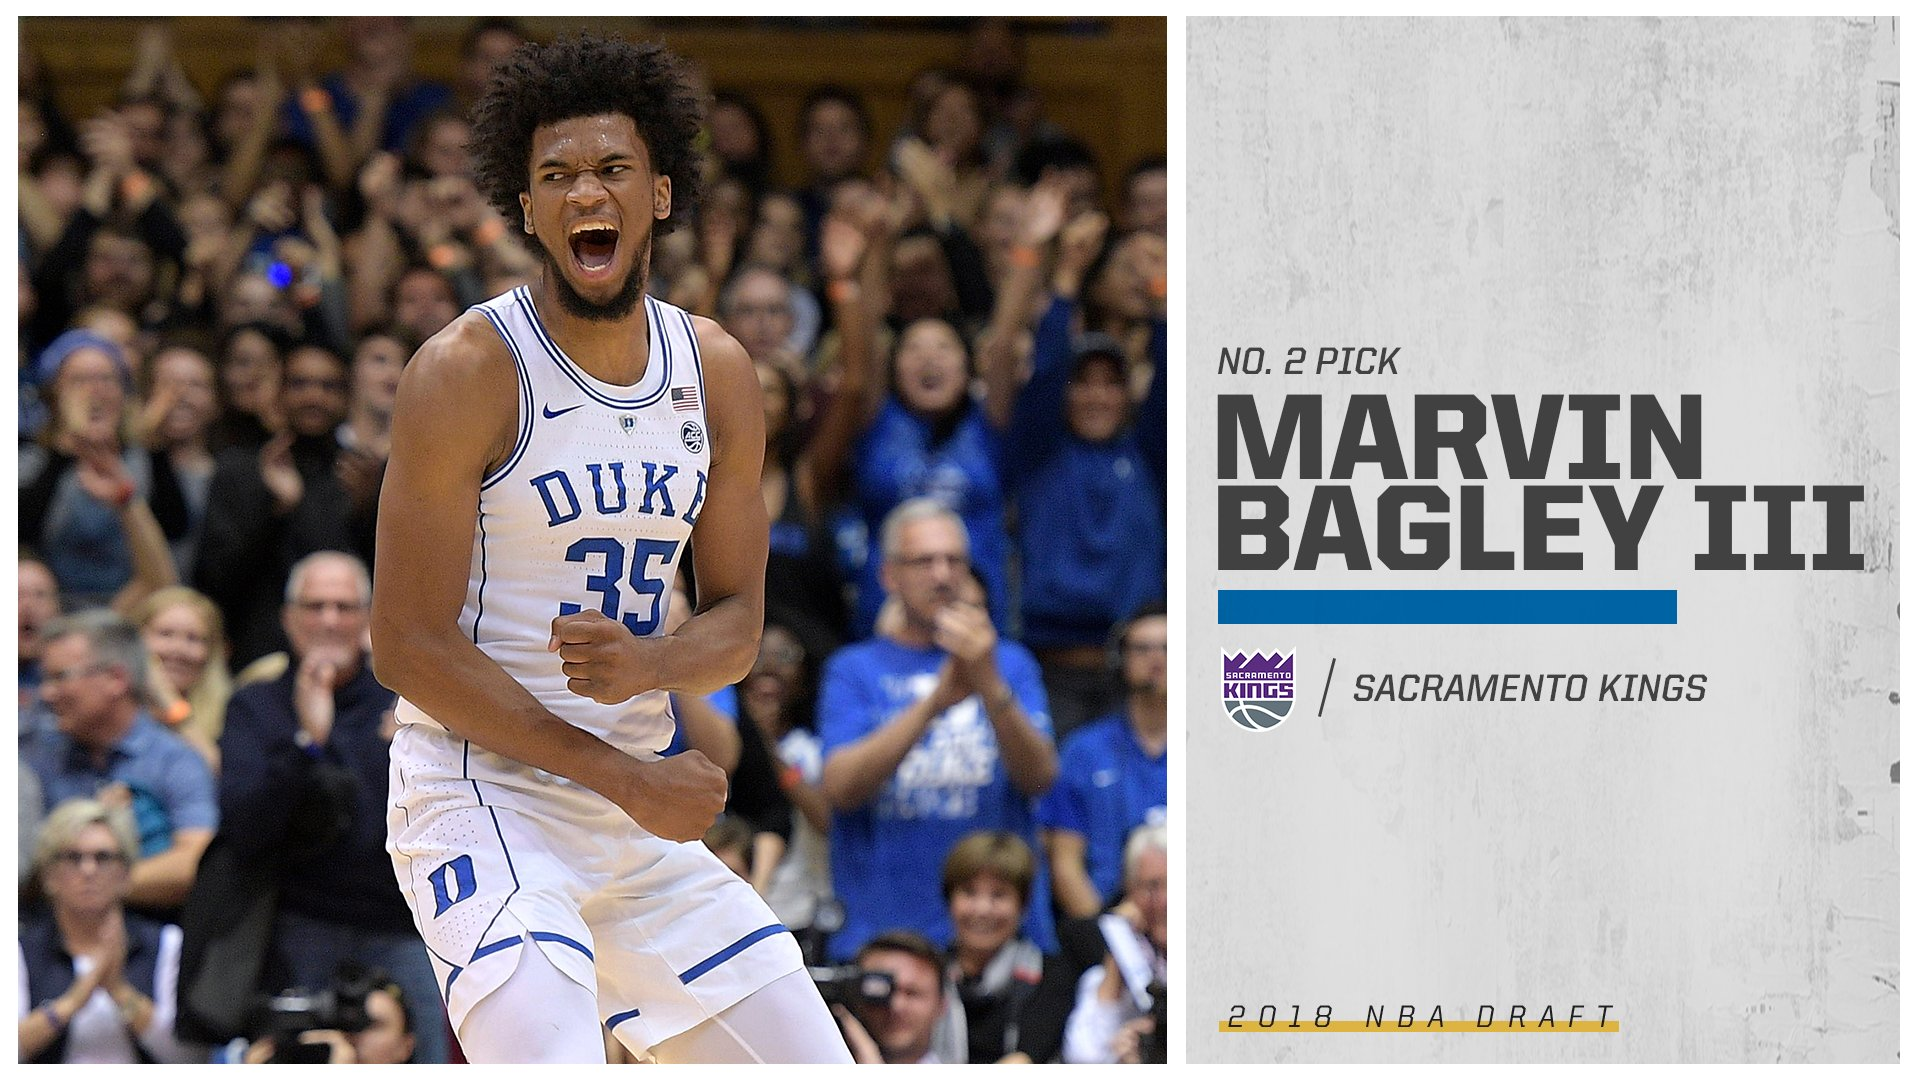 The newest King?  Duke's Marvin Bagley III is headed to Sacramento with the No. 2 pick. https://t.co/USgcCBBtOc